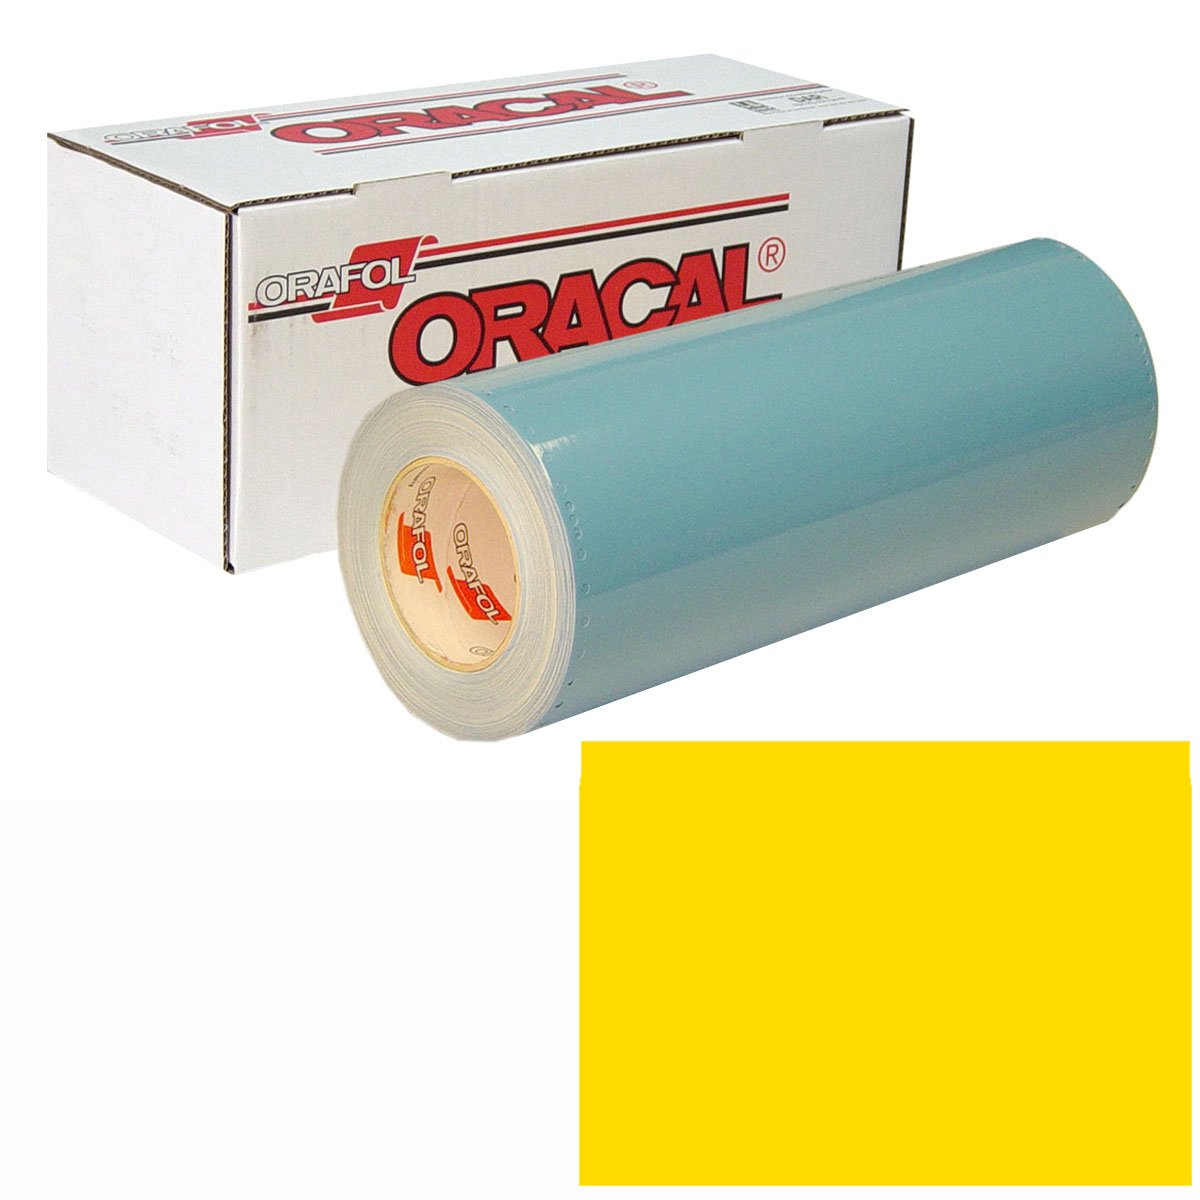 ORACAL 751 30In X 50Yd 021 Yellow